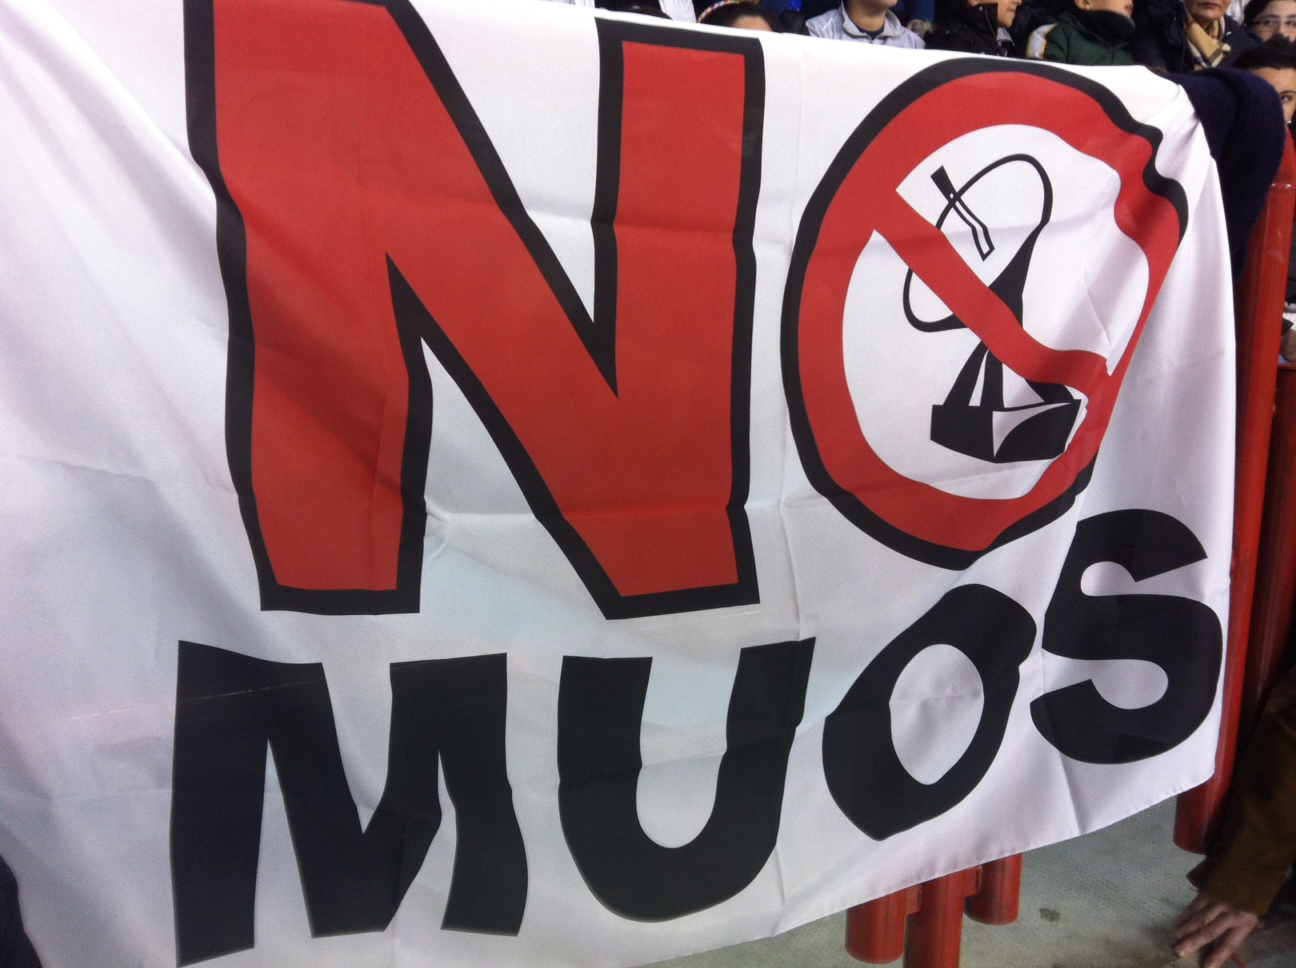 A protest banner of the 'No MUOS' collation.